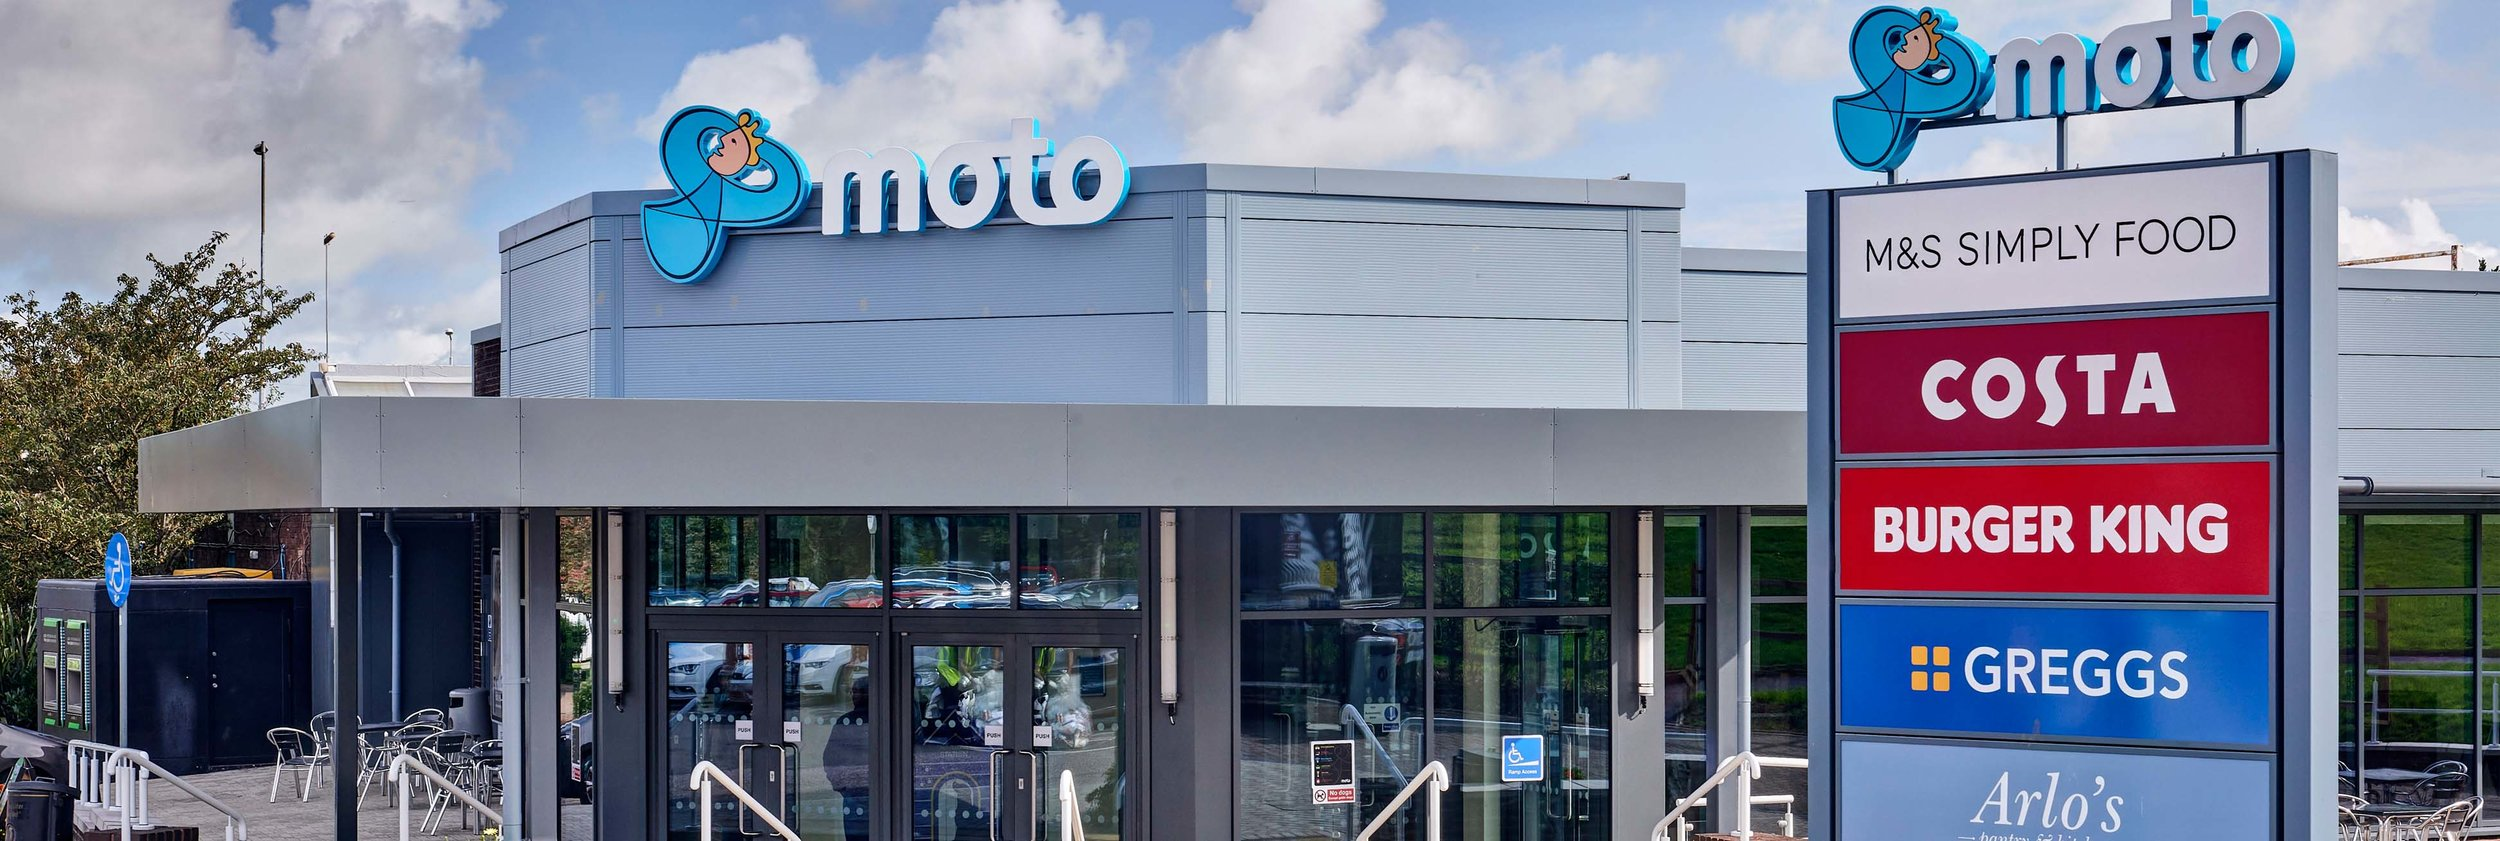 Project Case Study: Moto Hospitality - Enica provide turnkey water meter AMR across all Moto sites in the UK, combined with bureau data analysis and leak investigation. This total approach is resulting in savings of over £200,000 per year.